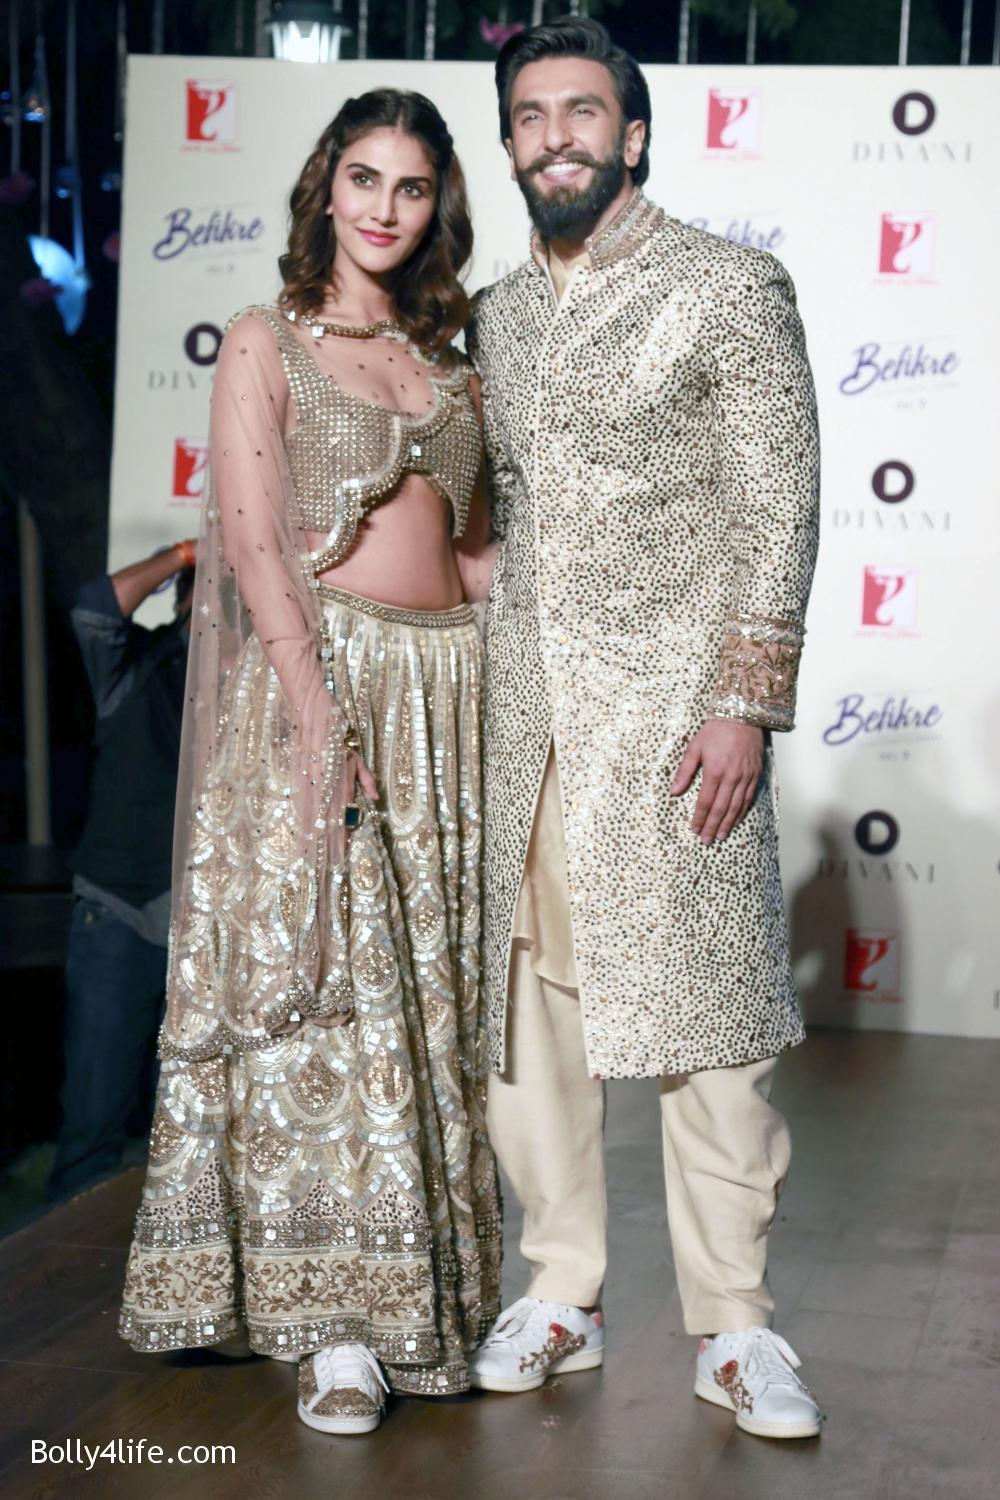 Divani-Fashion-Show-Ranveer-Singh-and-Vaani-Kapoor-21.jpg